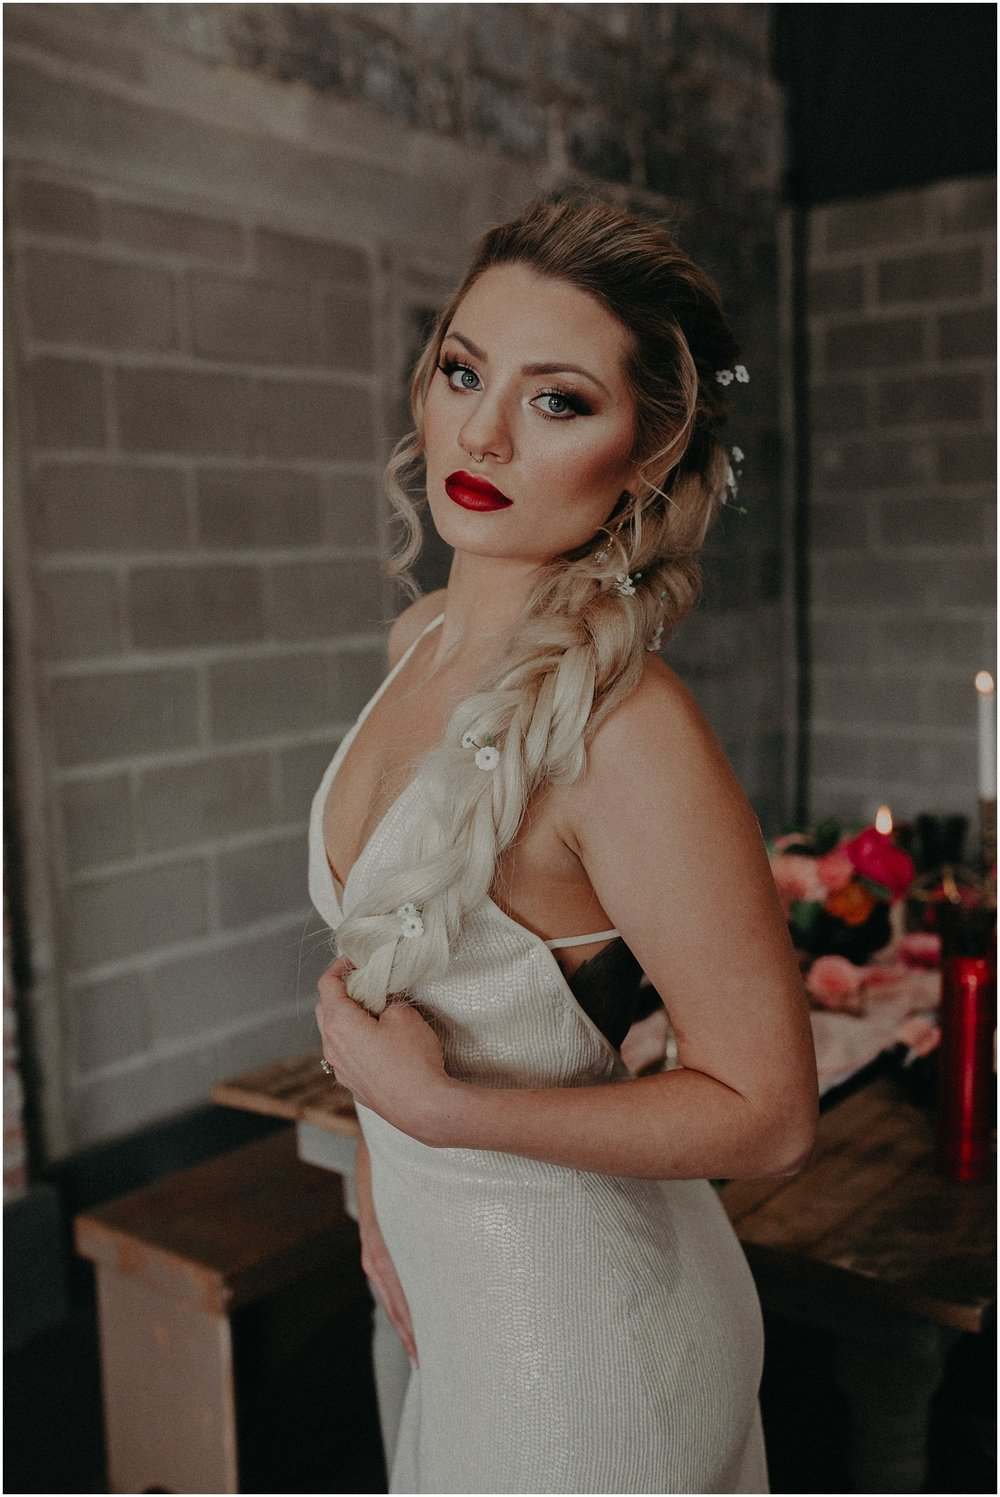 styled shoot-bridal portraits-portraits-bride-rock and roll-industrial-urban-wedding-inspiration-nj-new jersey-nyc-new york city-art-diy wedding_0049.jpg